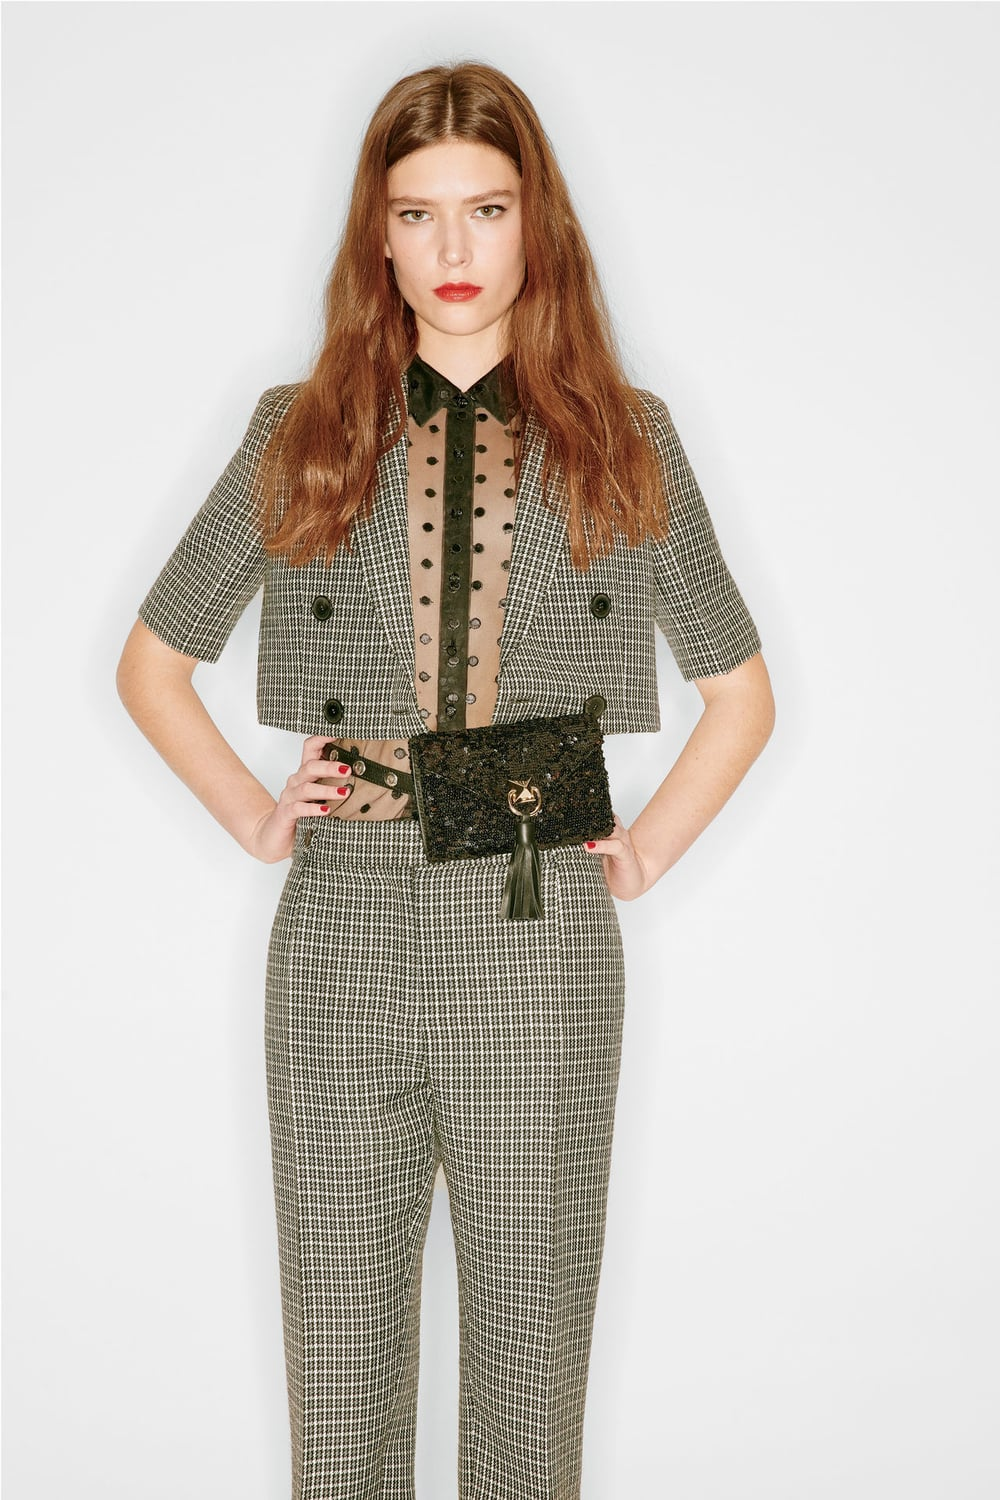 sonia_rykiel_pre_fall_2016_look_book_08.jpg